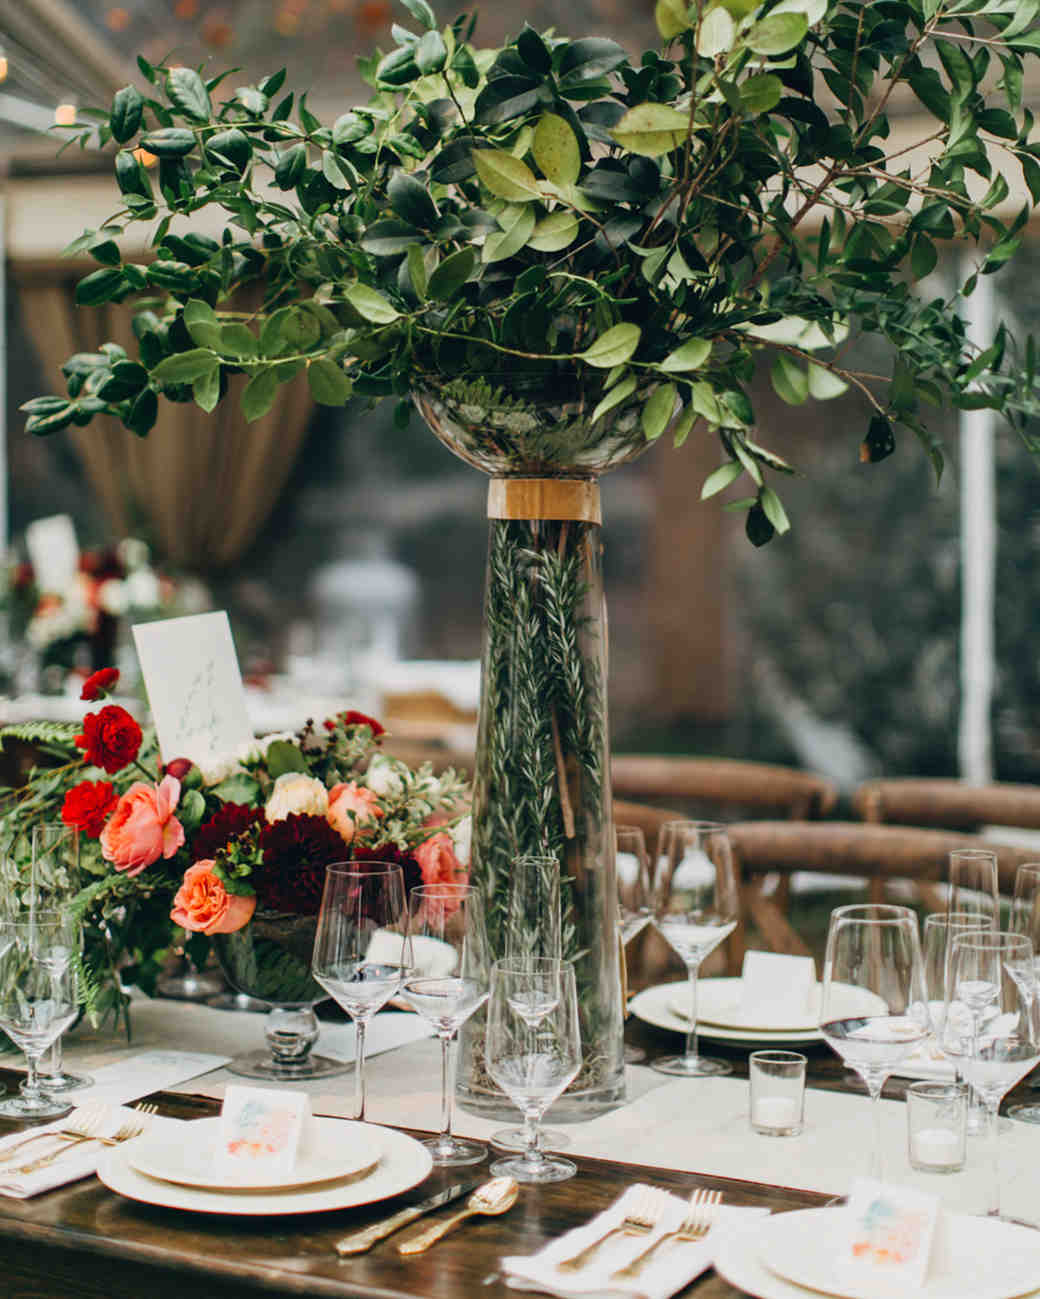 Wedding Flower Center Pieces: Tall Centerpieces That Will Take Your Reception Tables To